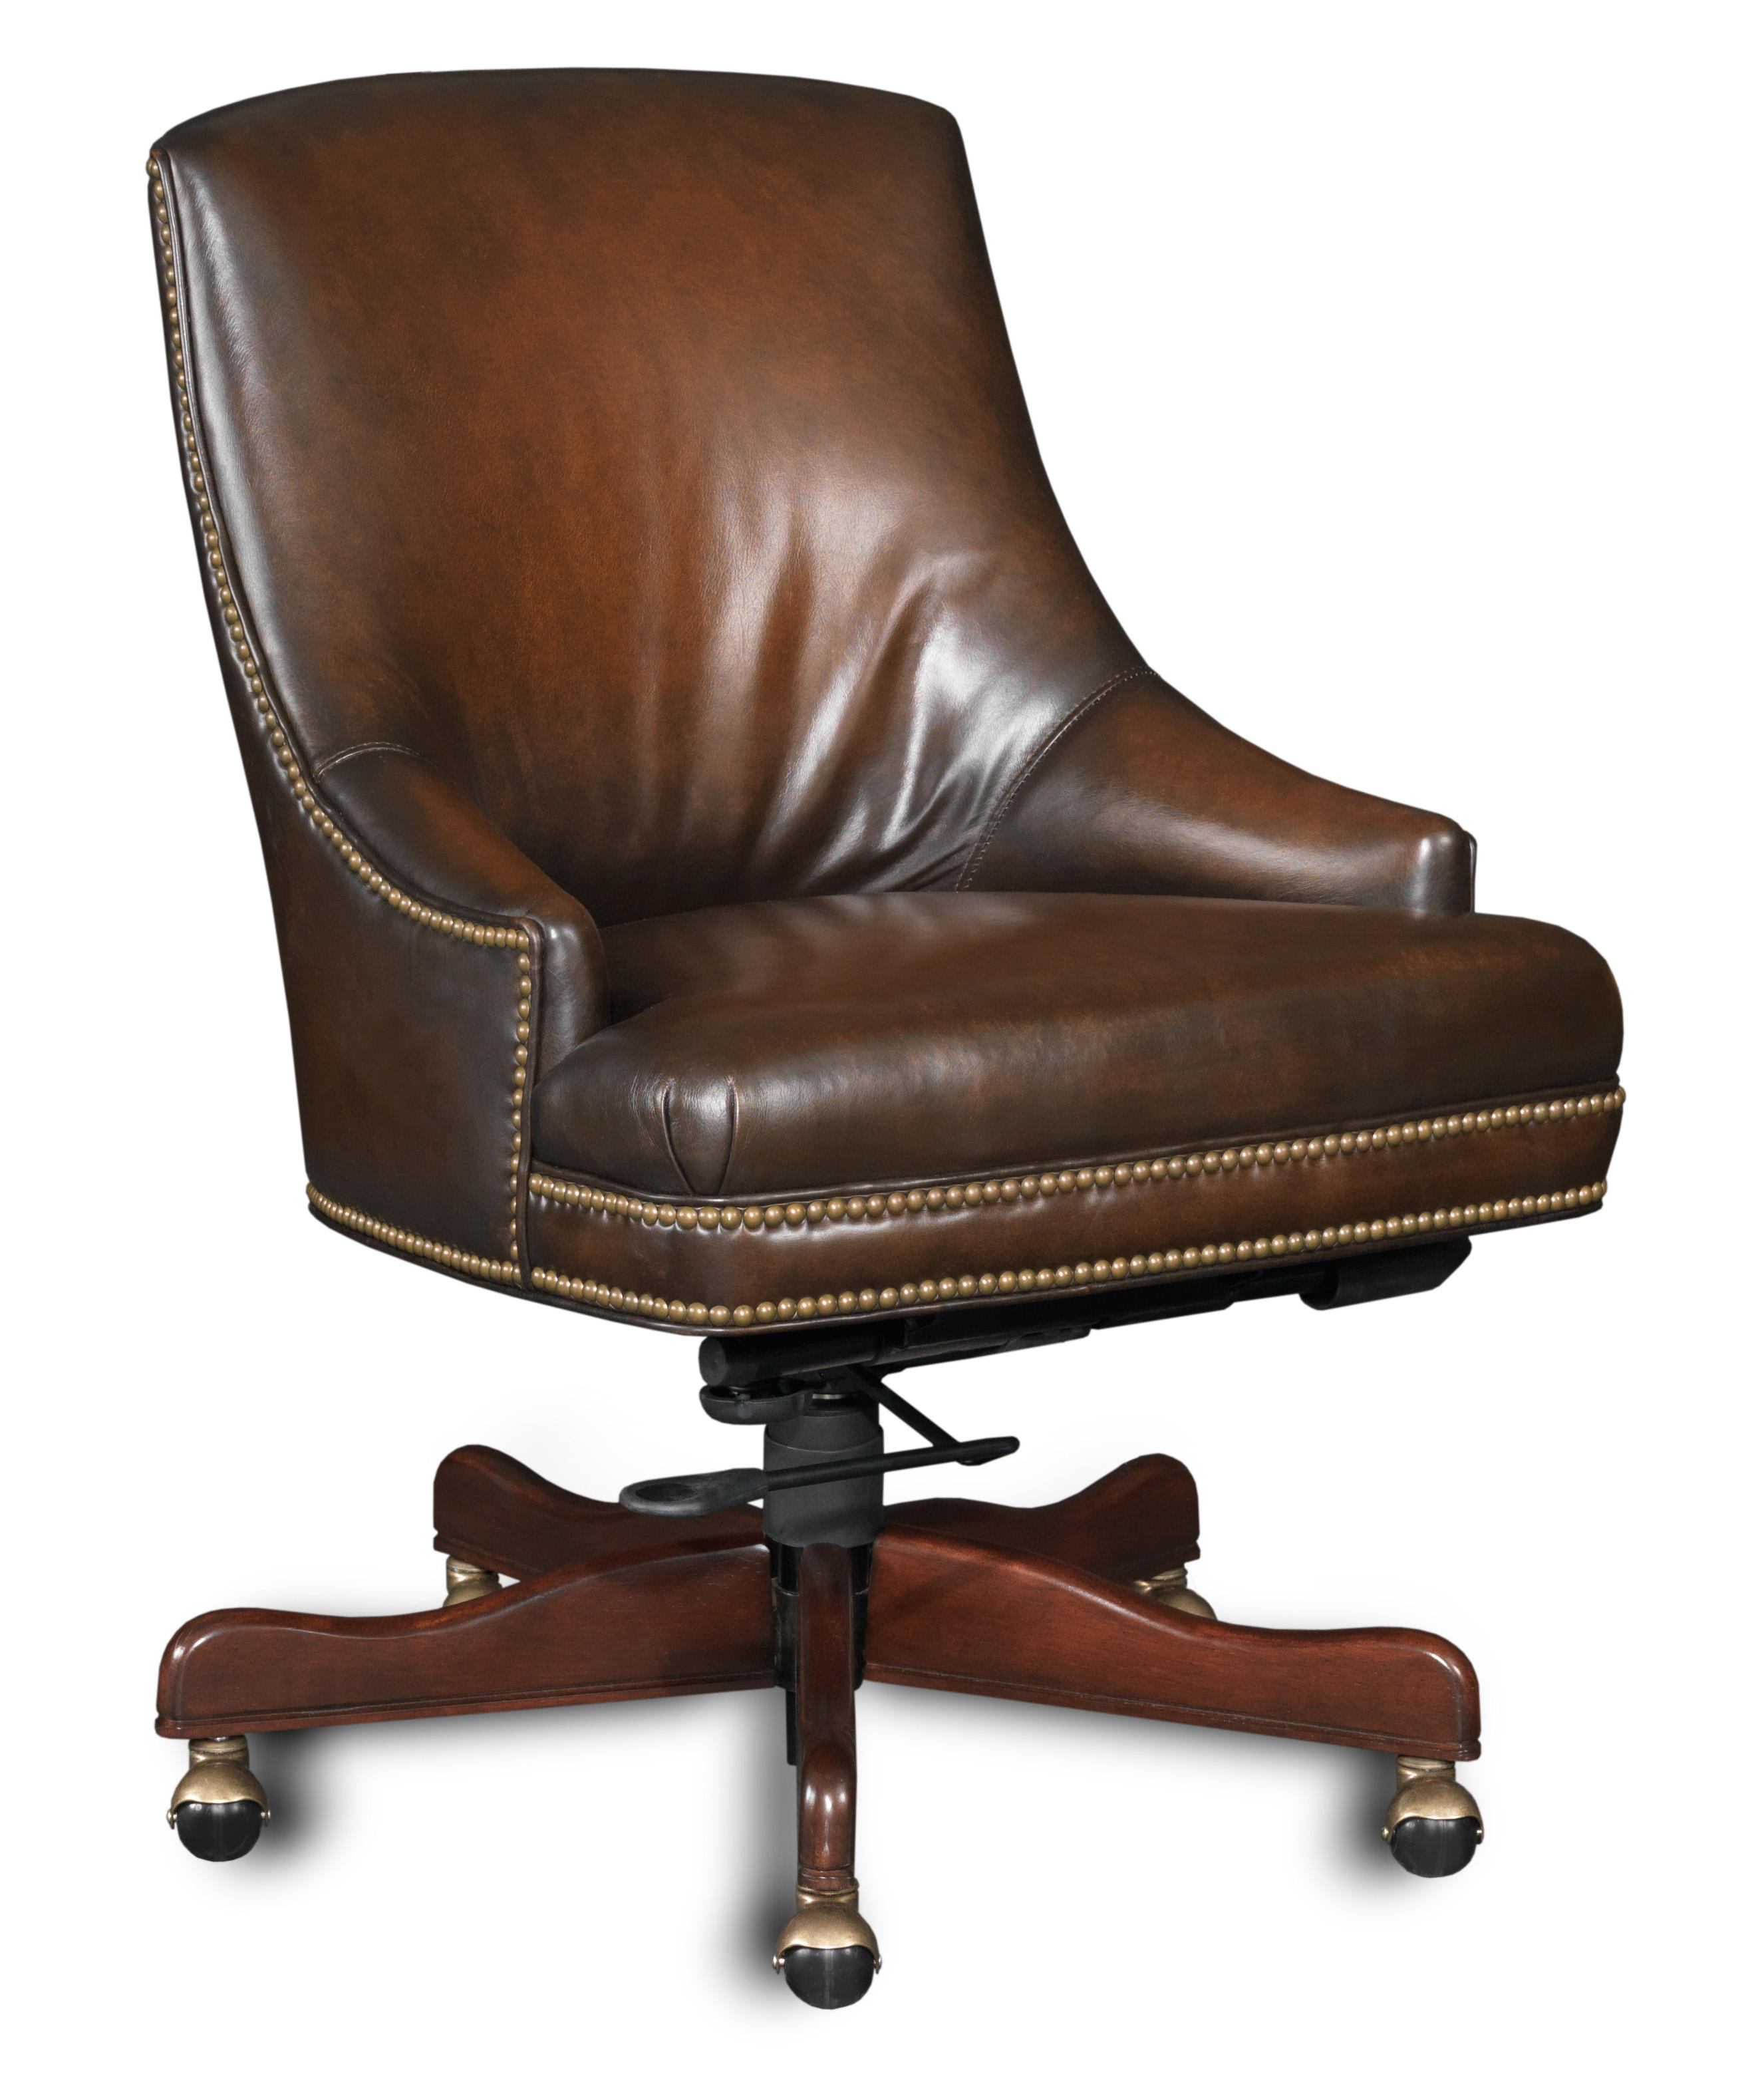 Executive Seating Executive Swivel Tilt Chair by Hooker Furniture at Miller Waldrop Furniture and Decor